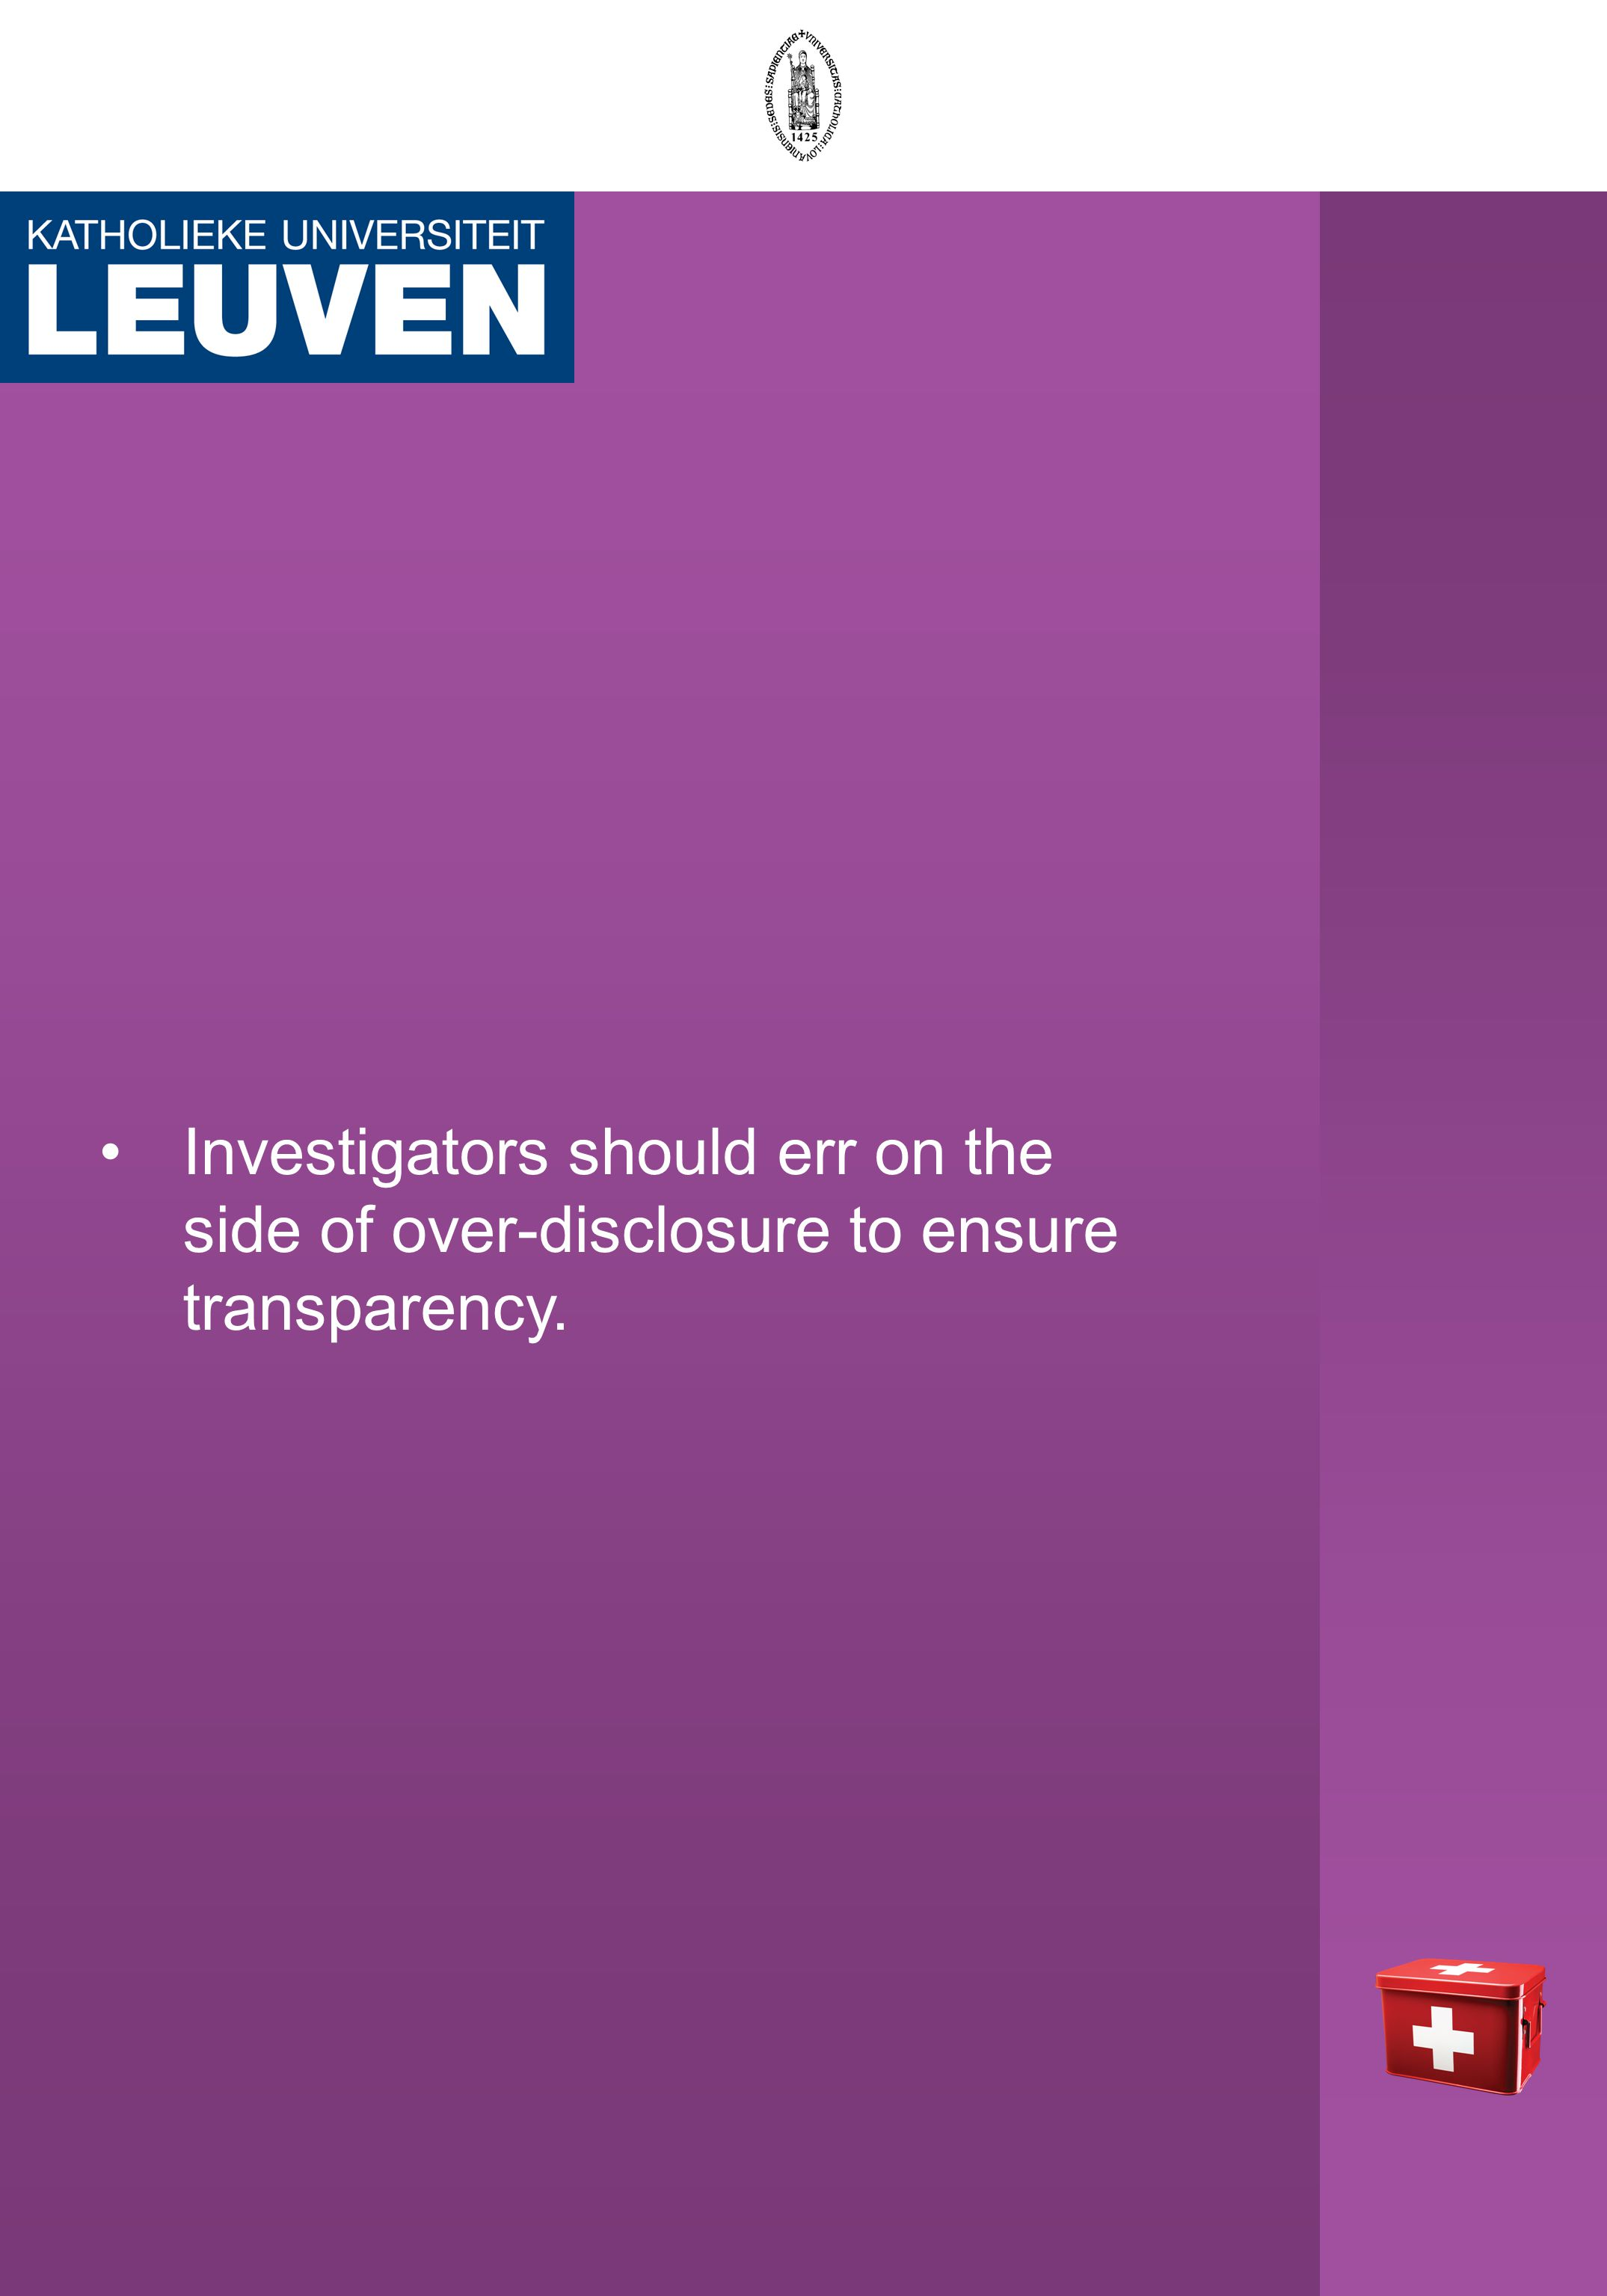 Investigators should err on the side of over-disclosure to ensure transparency.